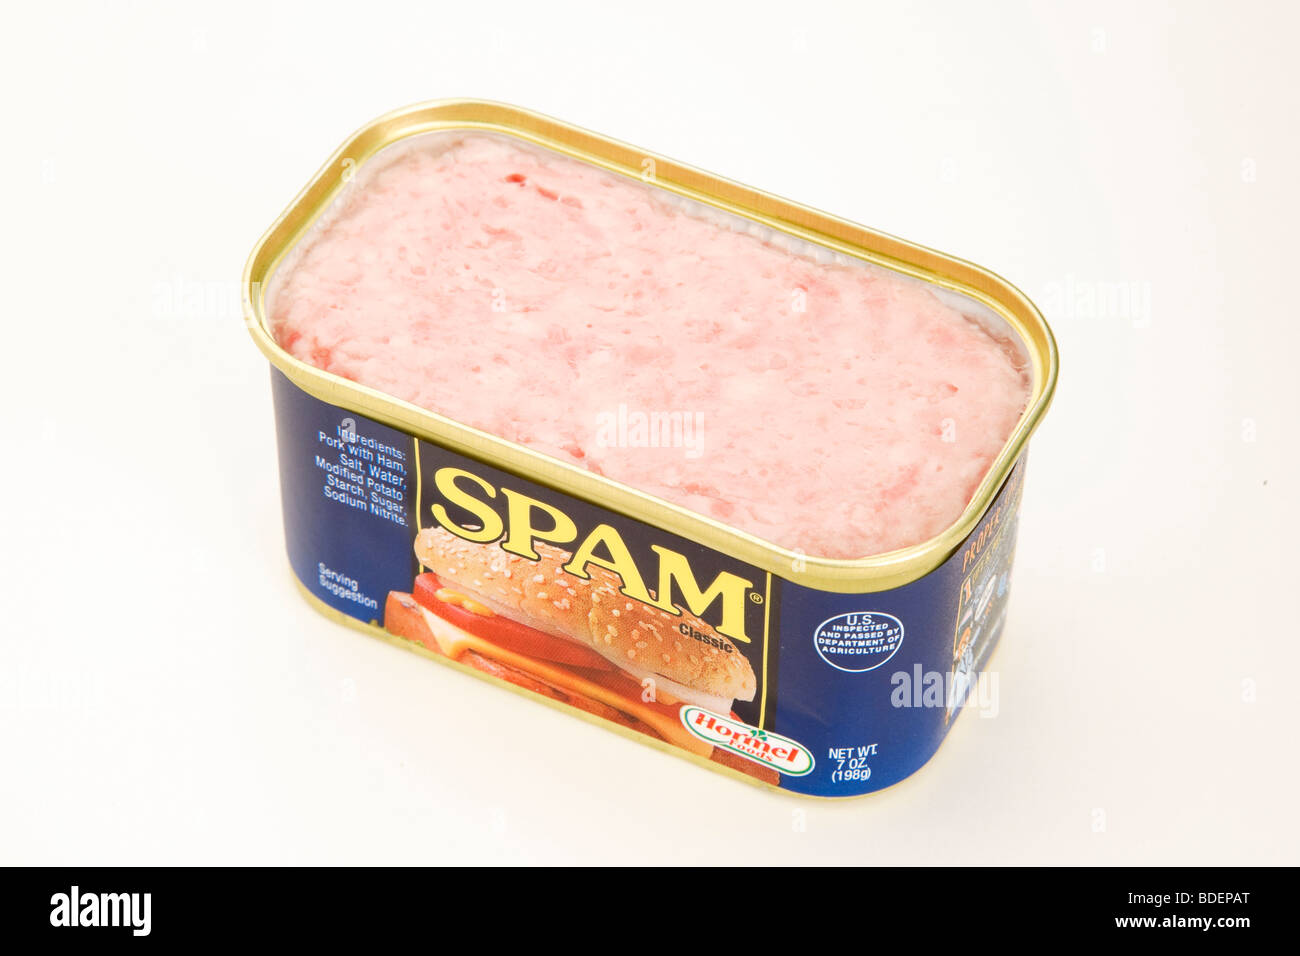 Canned Spam - Stock Image